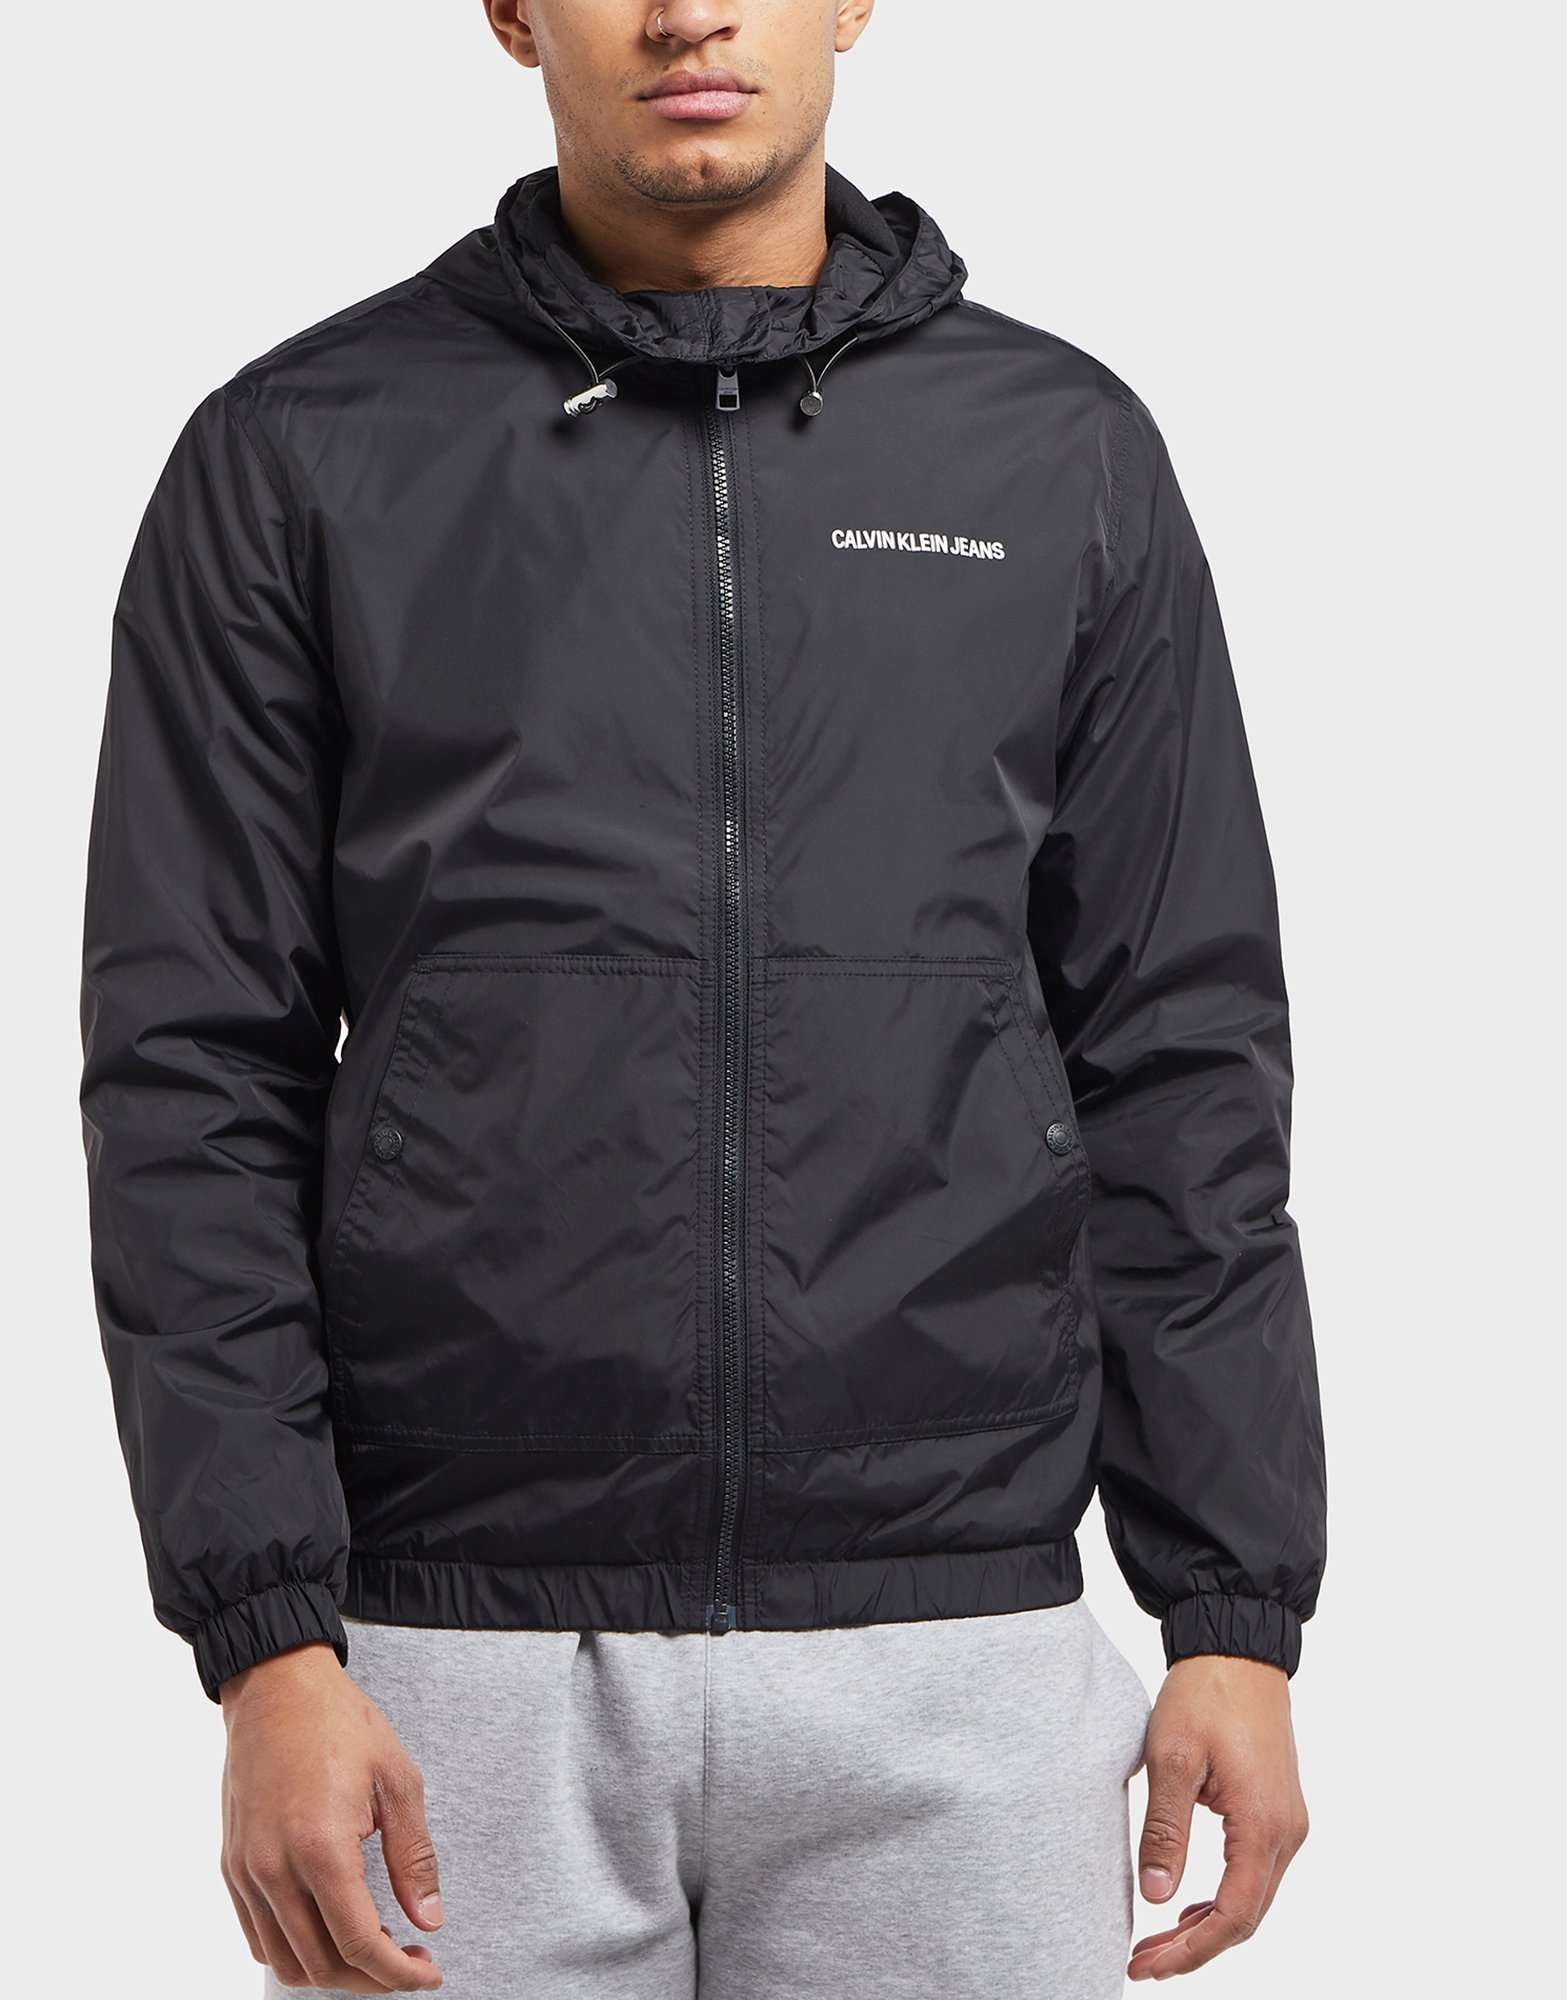 Calvin Klein Nylon Lightweight Jacket